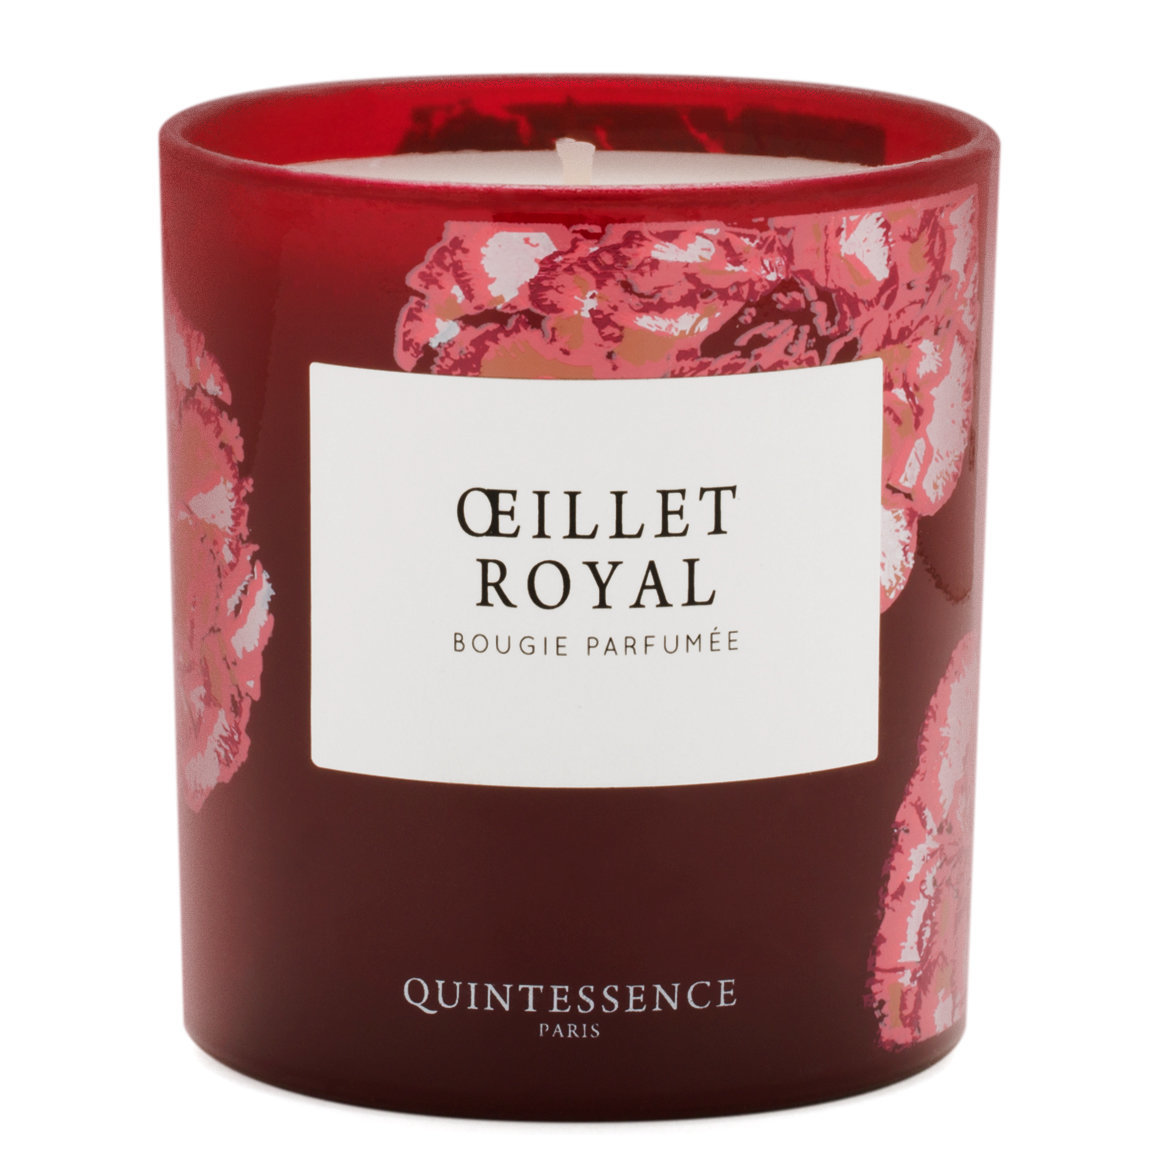 Quintessence Paris Oeillet Royal product smear.